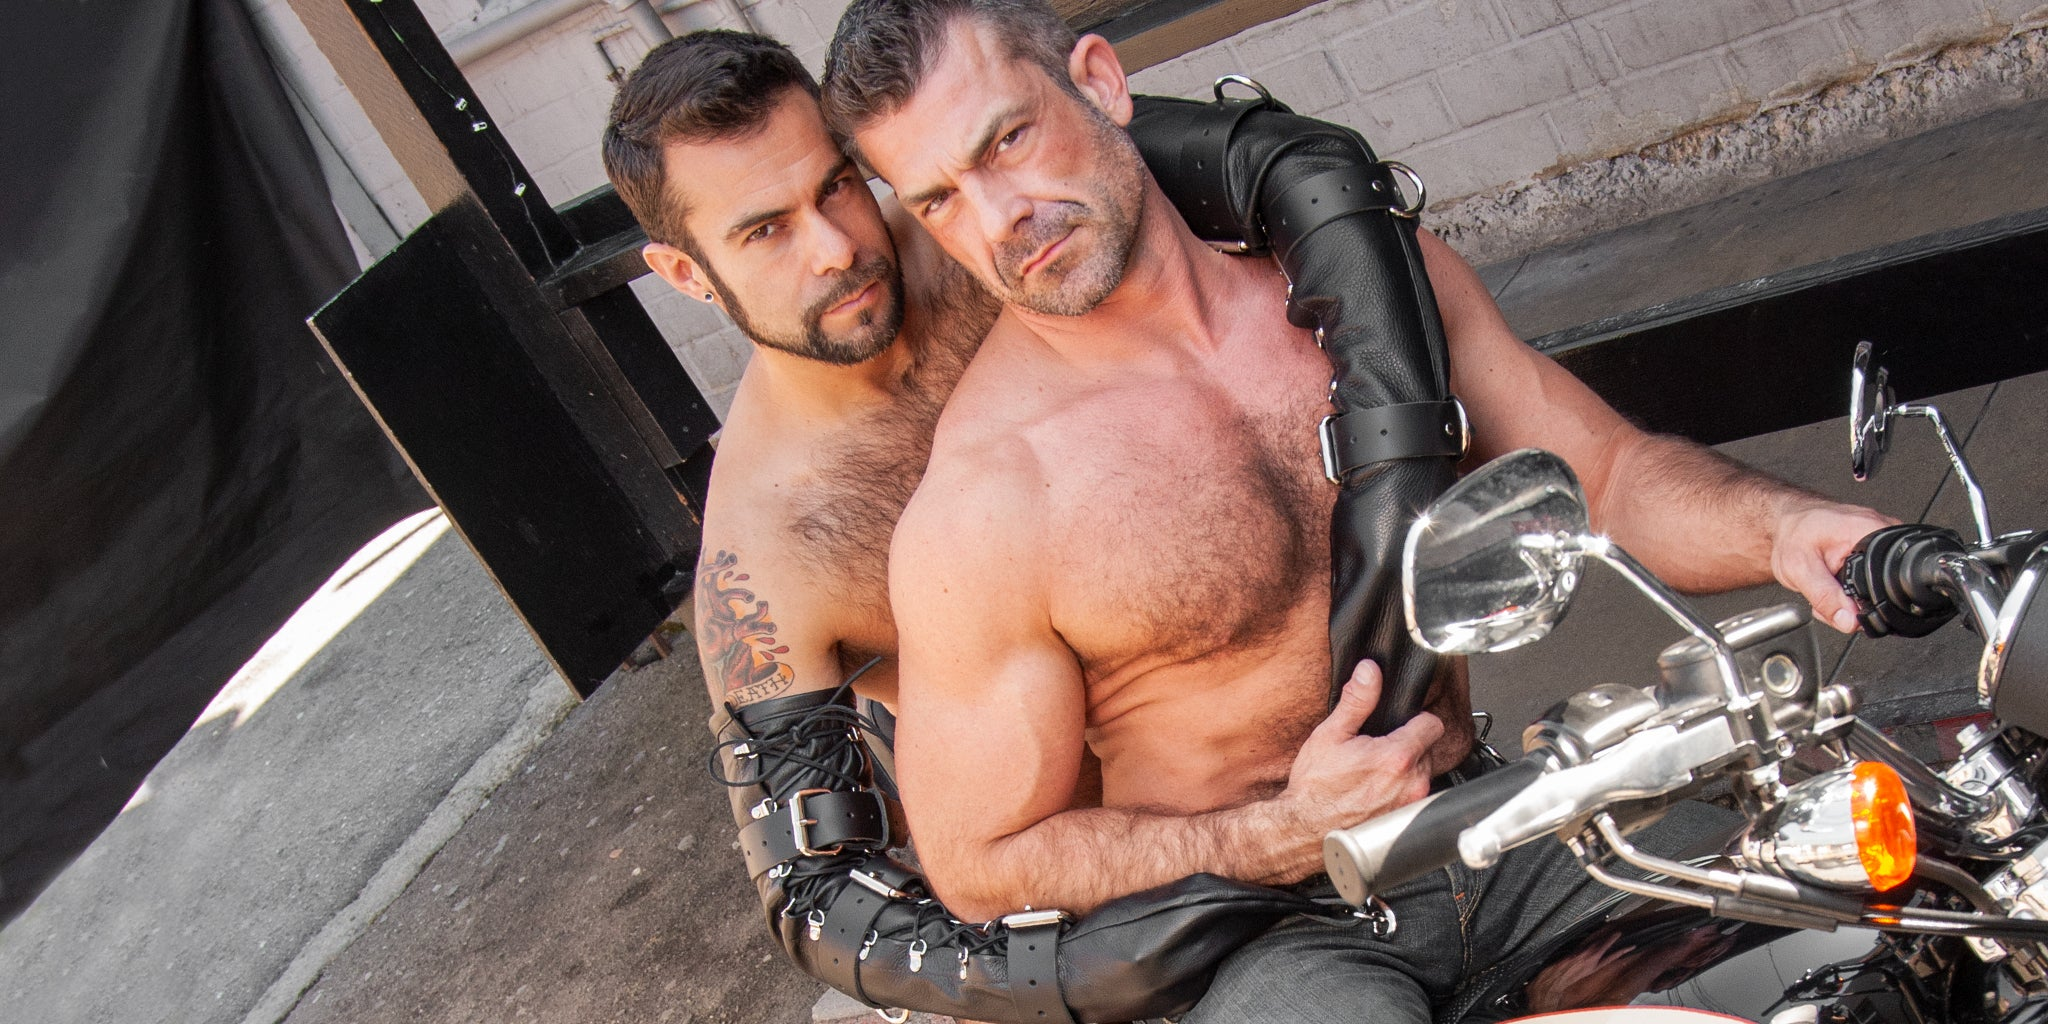 Two gay men holding each other wearing bondage gloves on a motorcycle. Male Stockroom Flash Sale: 20% Off Sitewide with code HEAT21